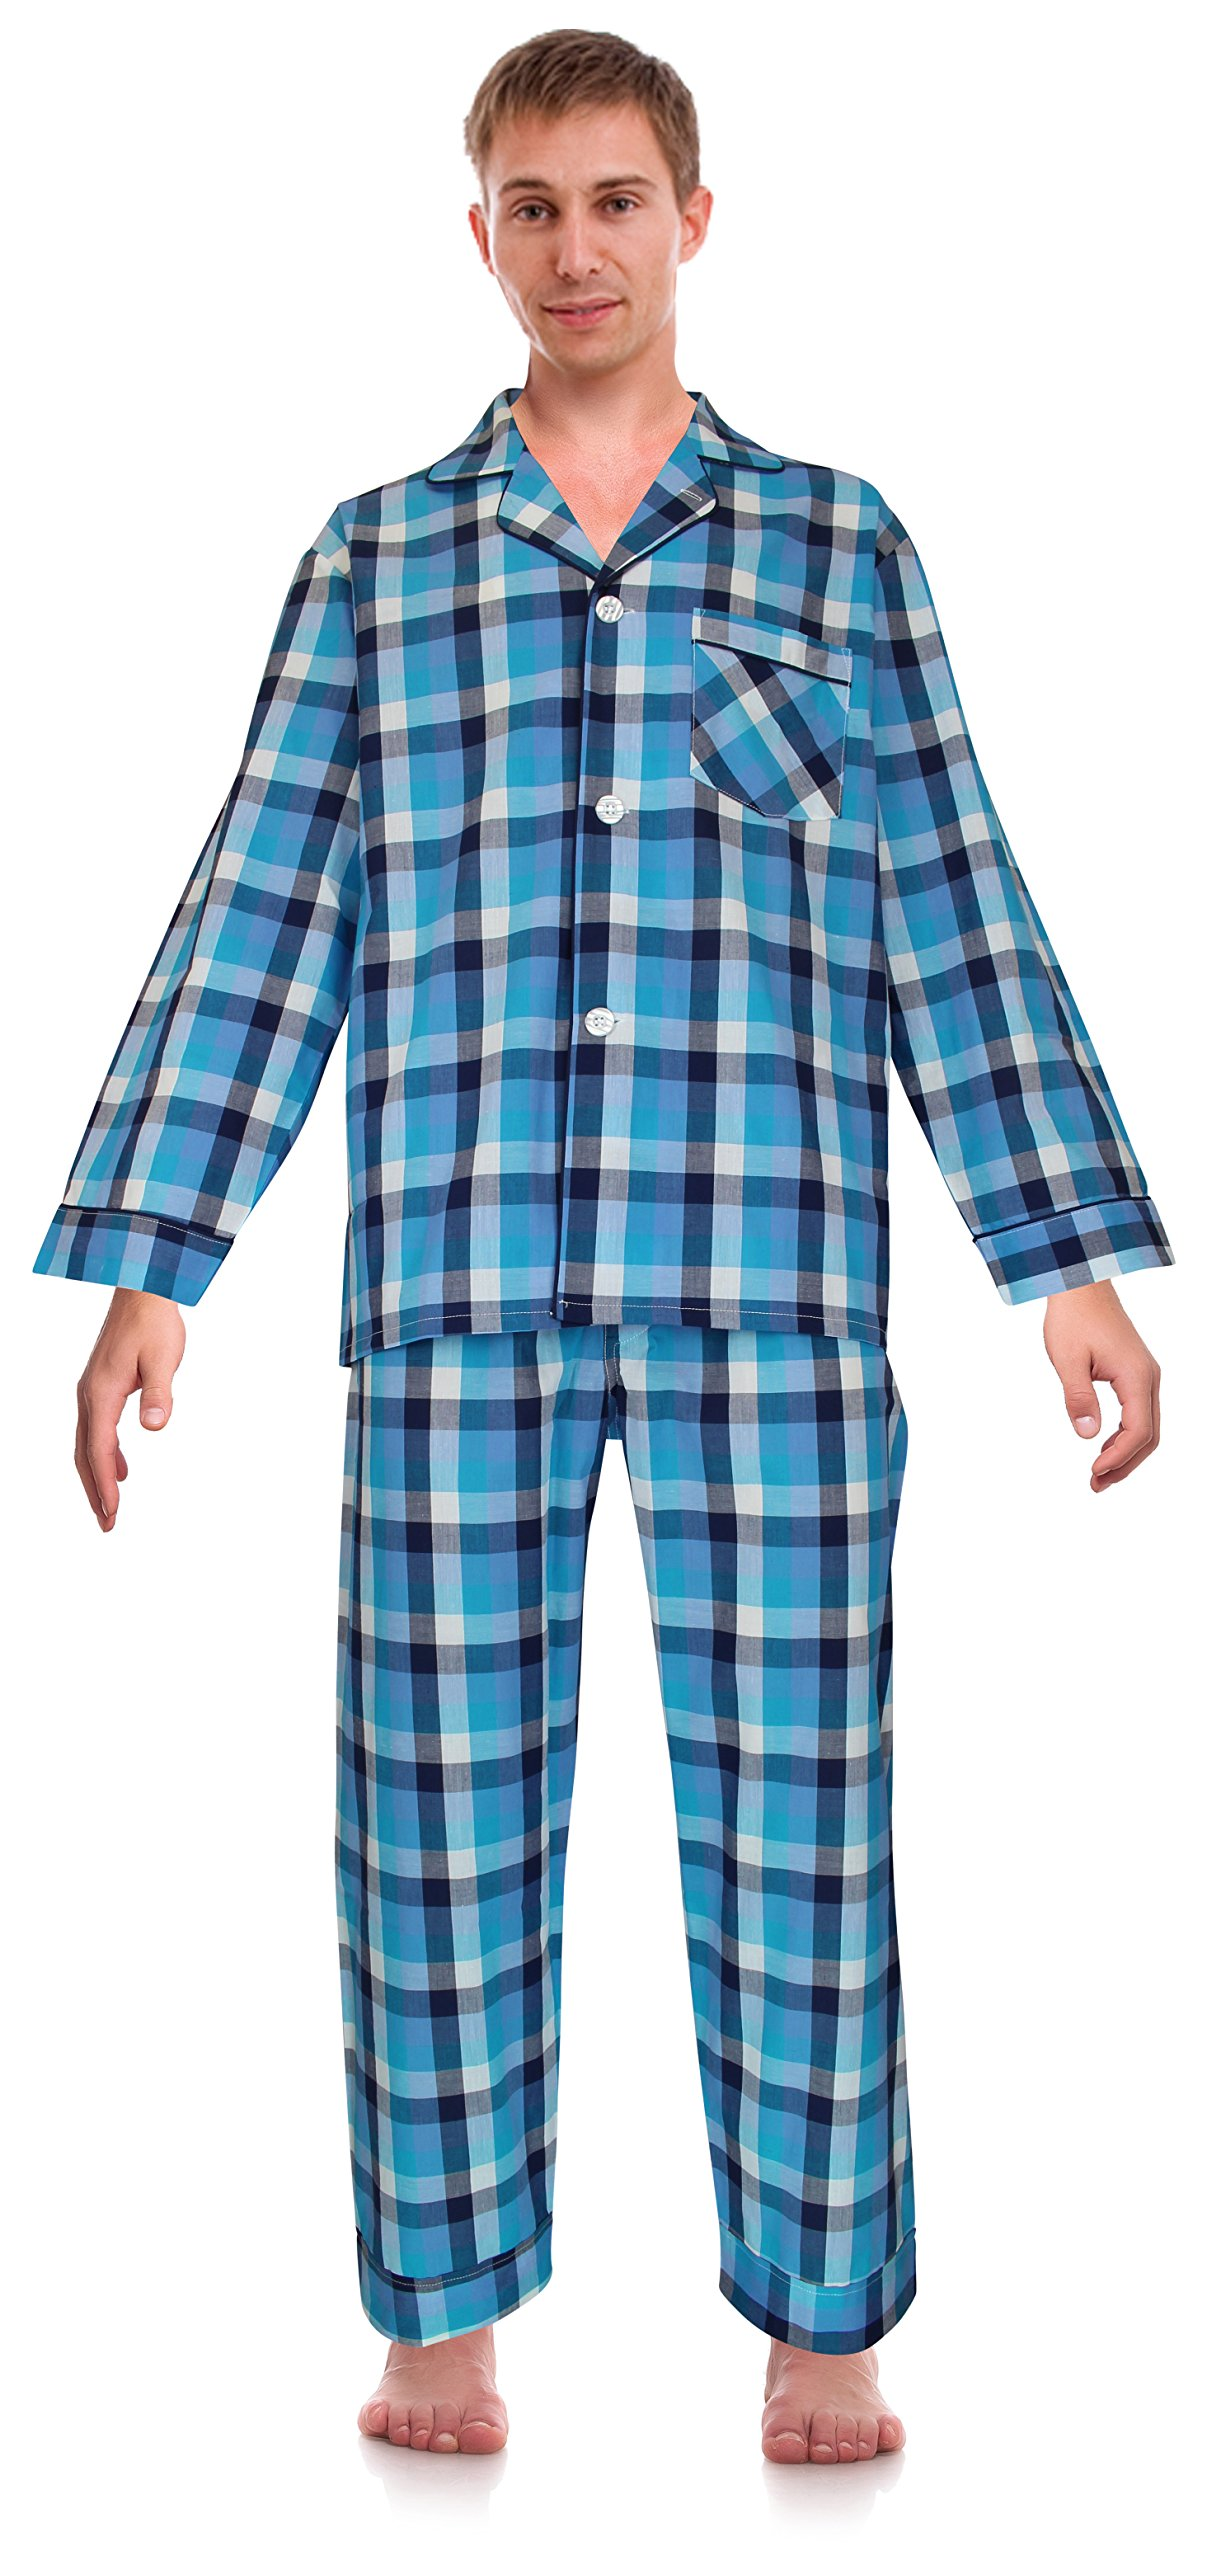 Robes King RK Classical Sleepwear Mens Broadcloth Woven Pajama Set, Size Large, Turquoise Blue, Check (0173)